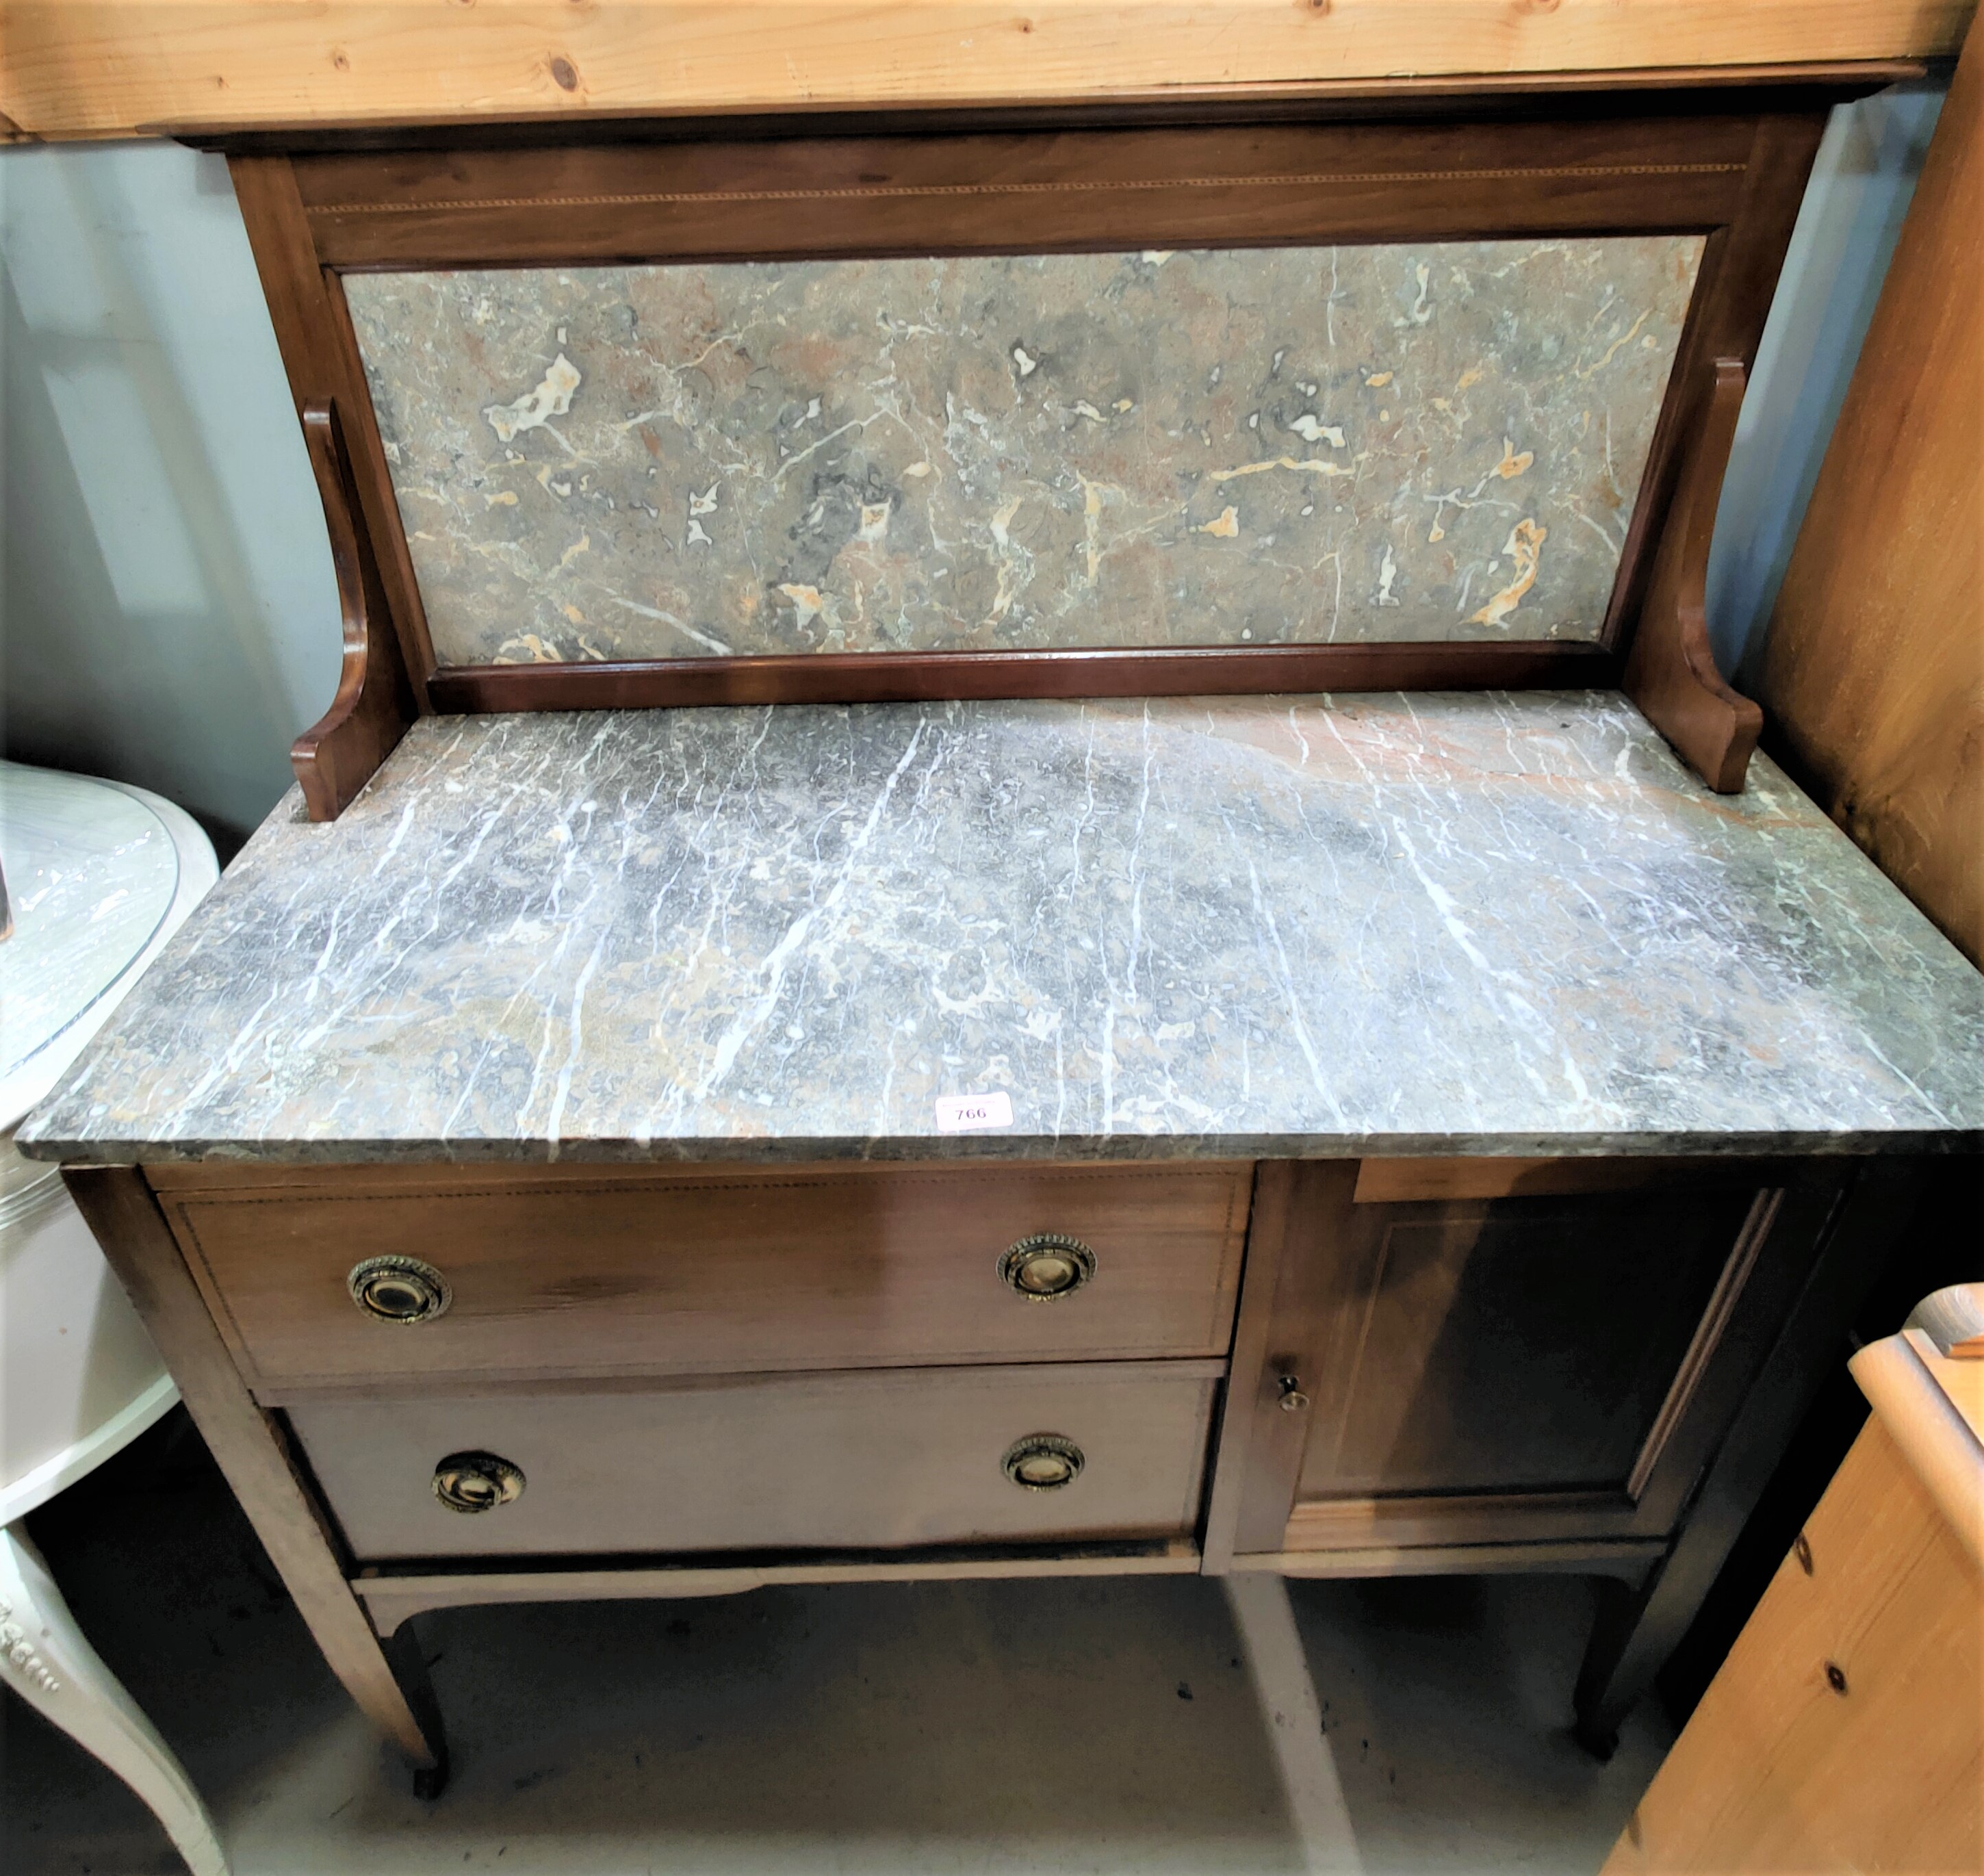 An Edwardian inlaid mahogany washstand with marble top and back, cupboard and 2 drawers